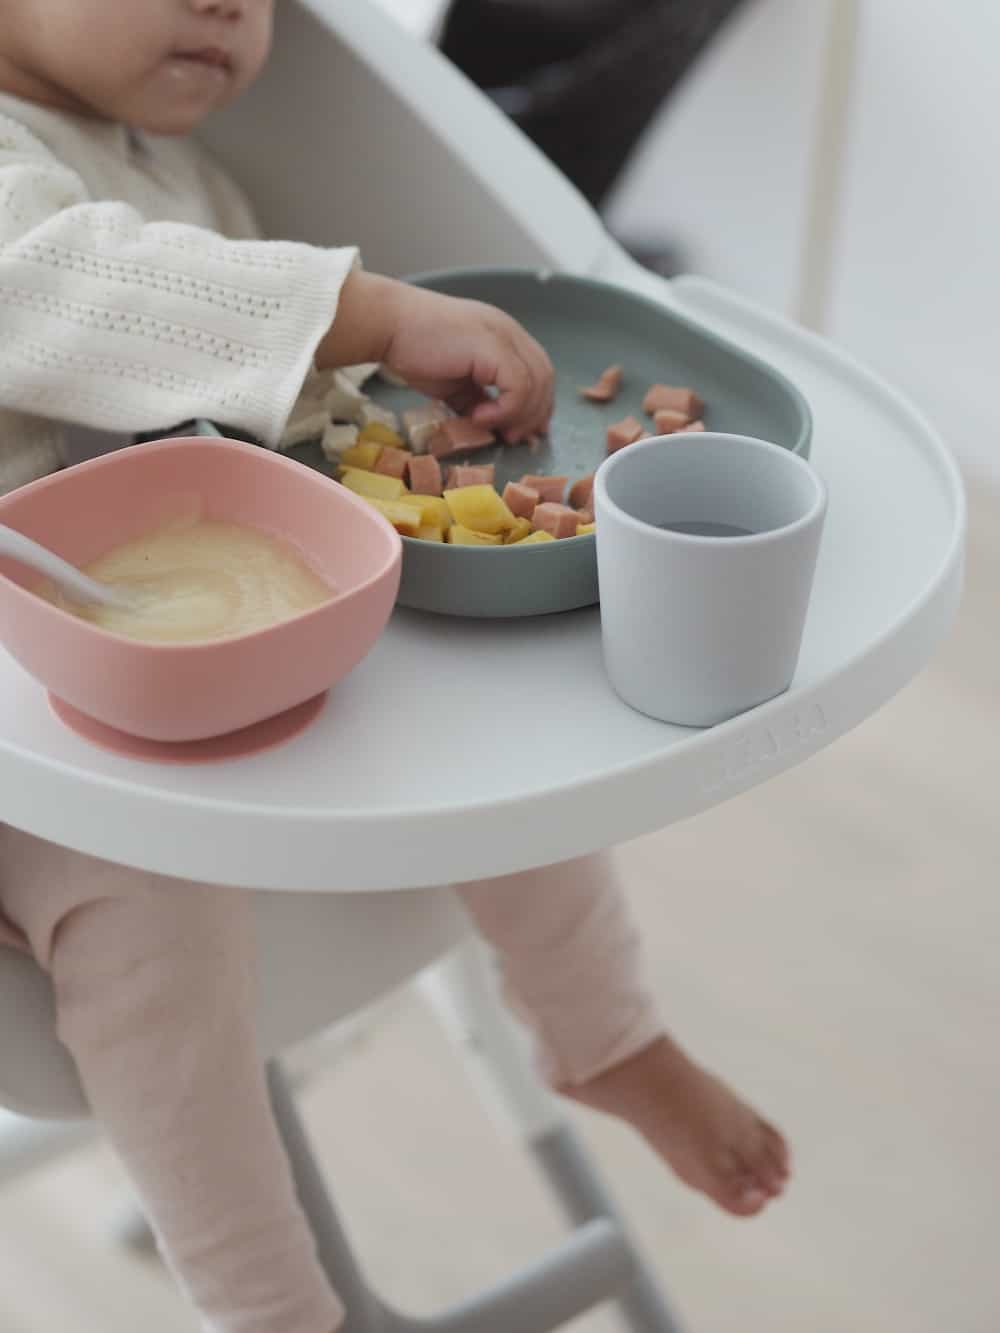 Silicone Suction Meal Set Eucalyptus Toddler Eating From High Chair